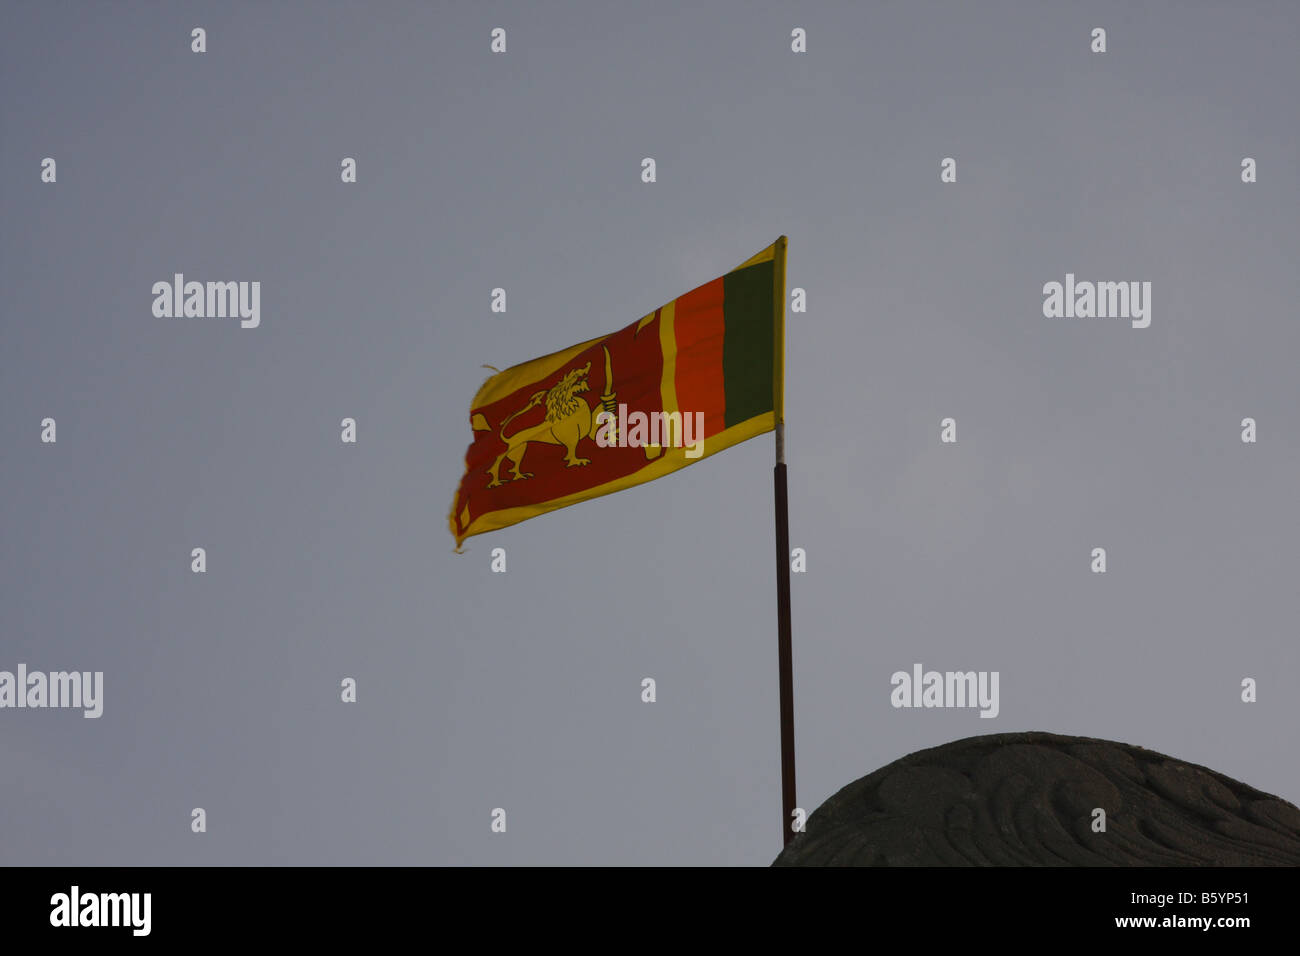 NATIONAL FLAG OF SRILANKA - Stock Image